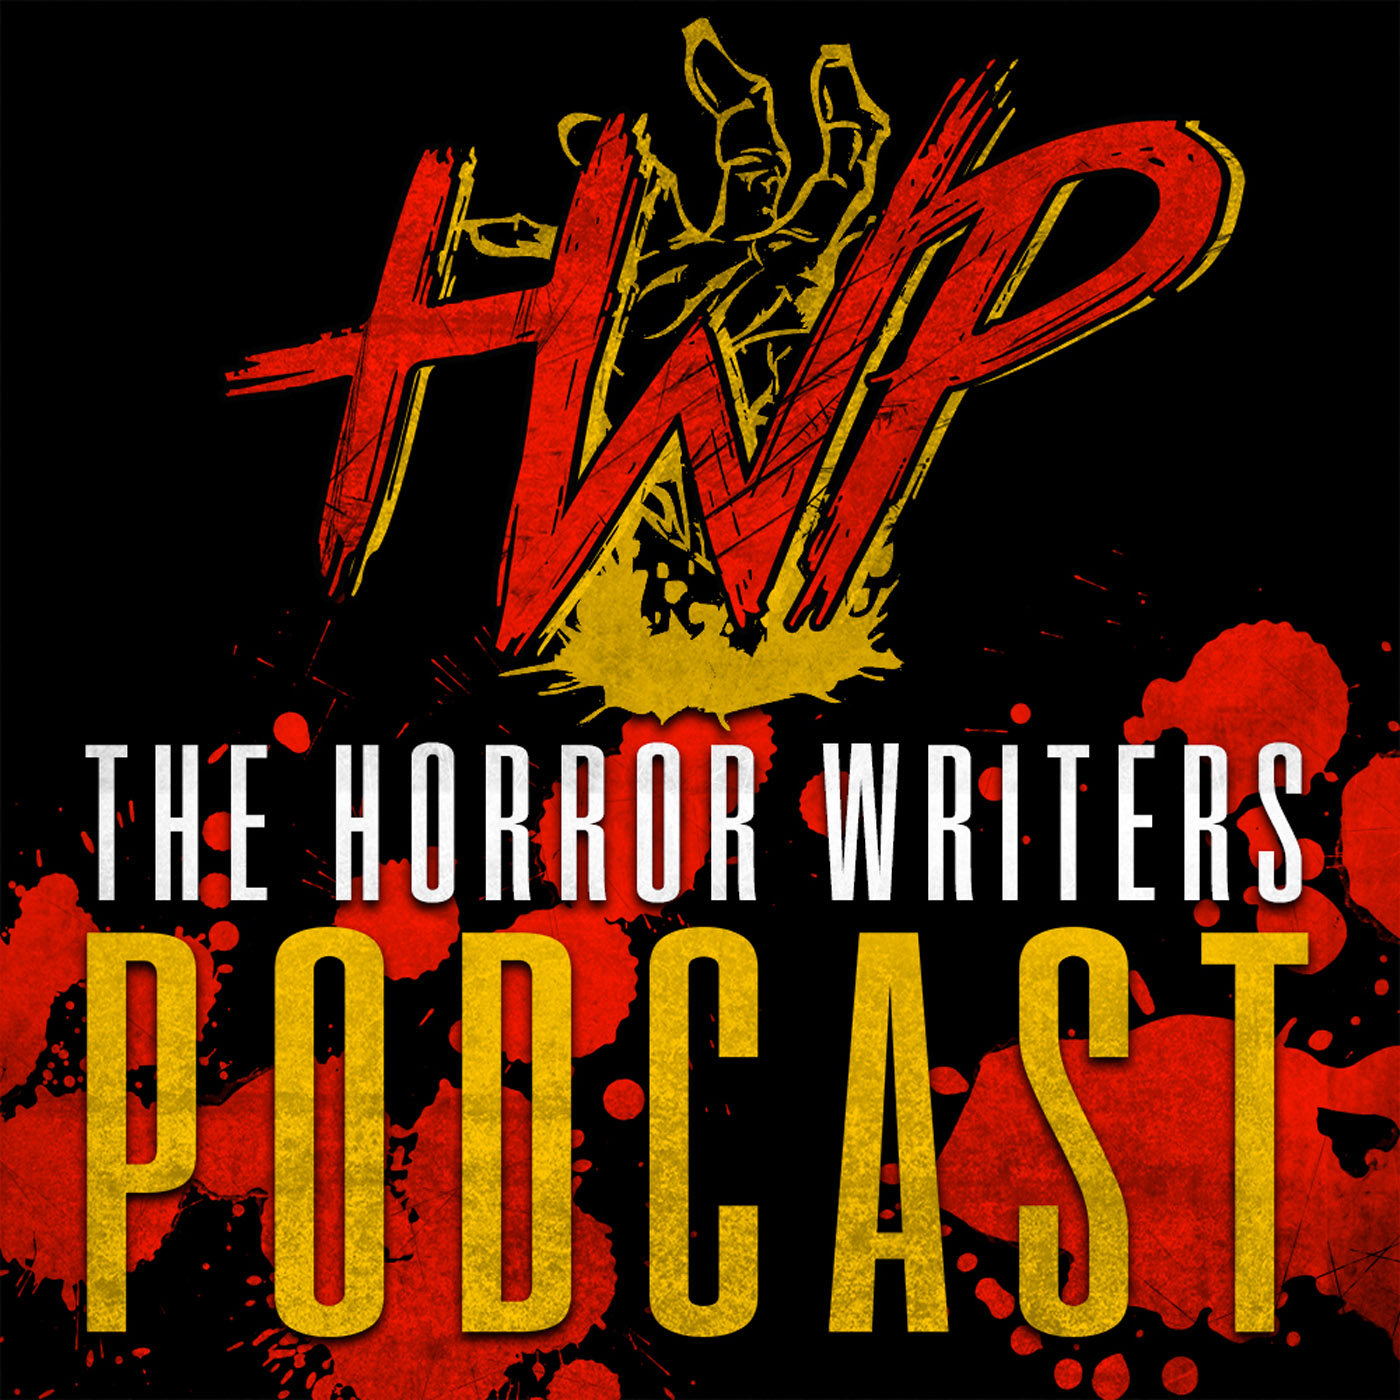 The Horror Writers Podcast show art